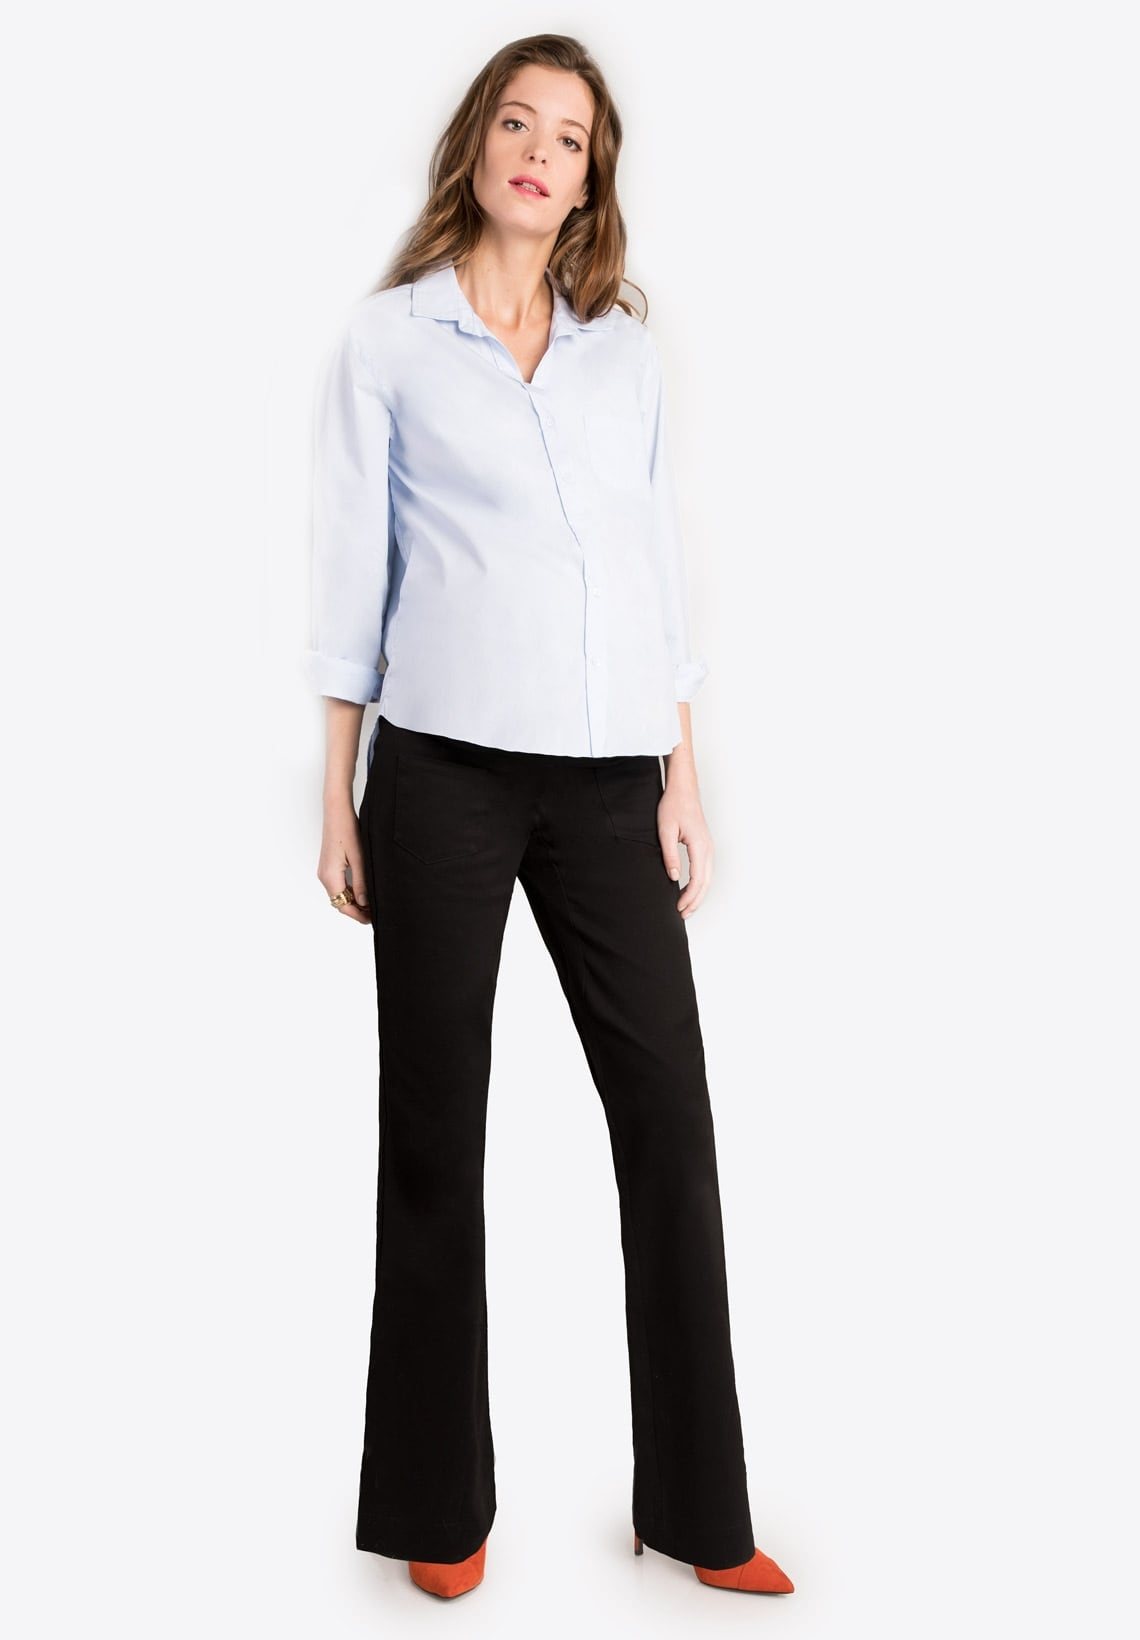 61447cb060ff4 Maternity pants with over belly band ADELYS Black